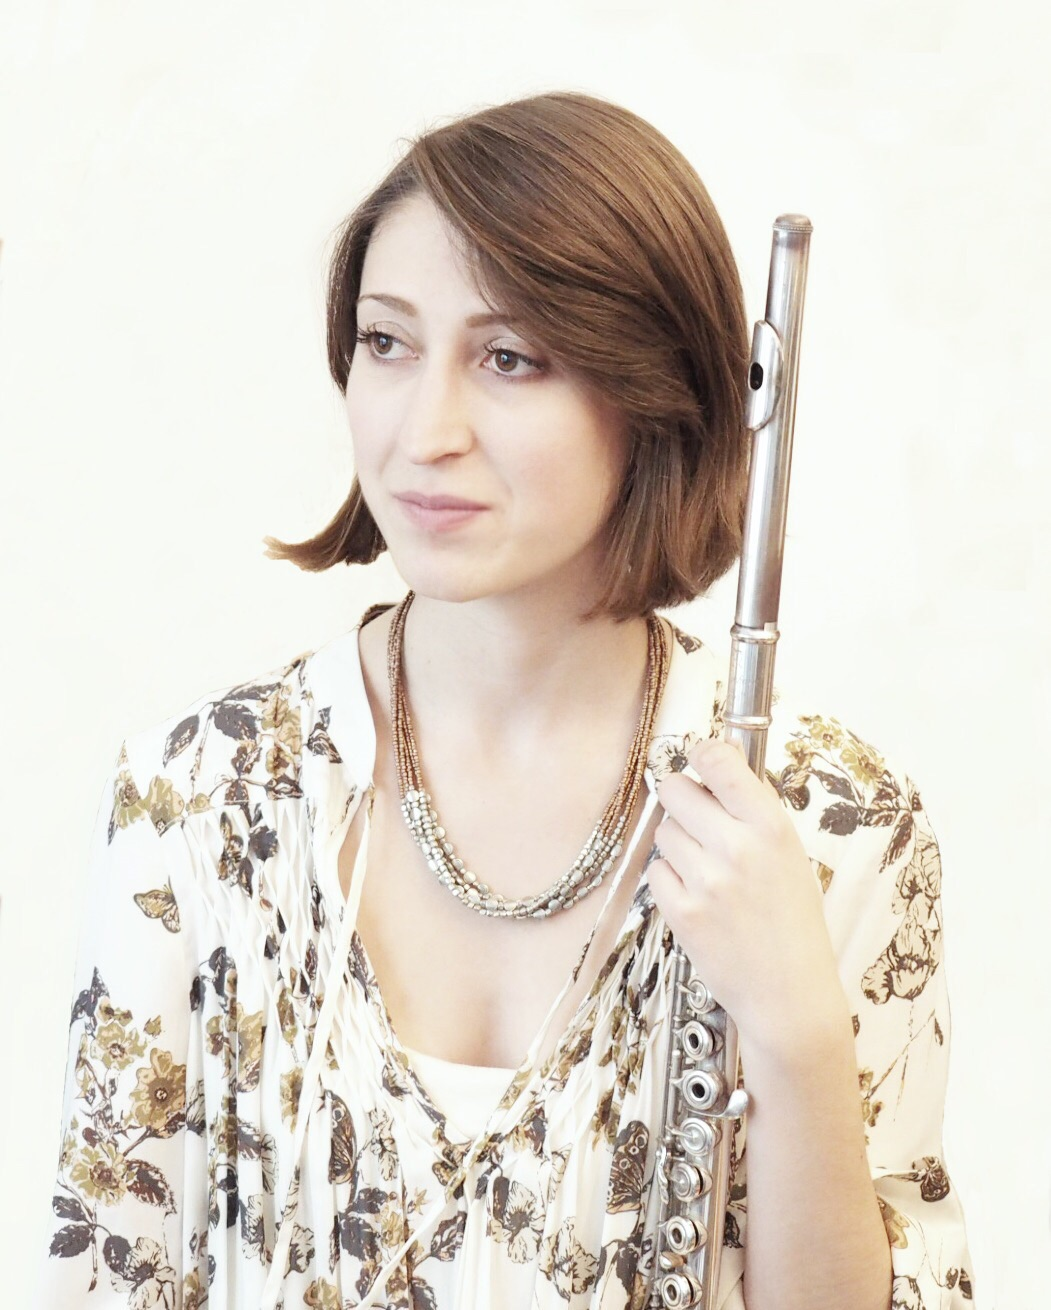 """Francesca Ferrara   Flutist Francesca Ferrara has followed her music from Santa Monica, California, where she grew up, to New York City. With the goal of building community, she dedicates her life to performing and advocating for new music. She frequently collaborates with composers and is a member of the New York City based ensemble, Amalgama. She has performed at the Contemporary Performance Institute under the direction of Fred Sherry, the Montreal Contemporary Music Lab, Cortona Sessions for New Music in Italy, and Fresh Inc Festival. Francesca is also the creator and director of  Common Senses , a """"concert"""" series that brings chefs and composers together to create multi-sensory experiences. She earned a Master of Music degree in Contemporary Performance from Manhattan School of Music where she was a student of Tara O'Connor, and a Bachelor of Music degree from The Boston Conservatory where she studied with Sarah Brady."""